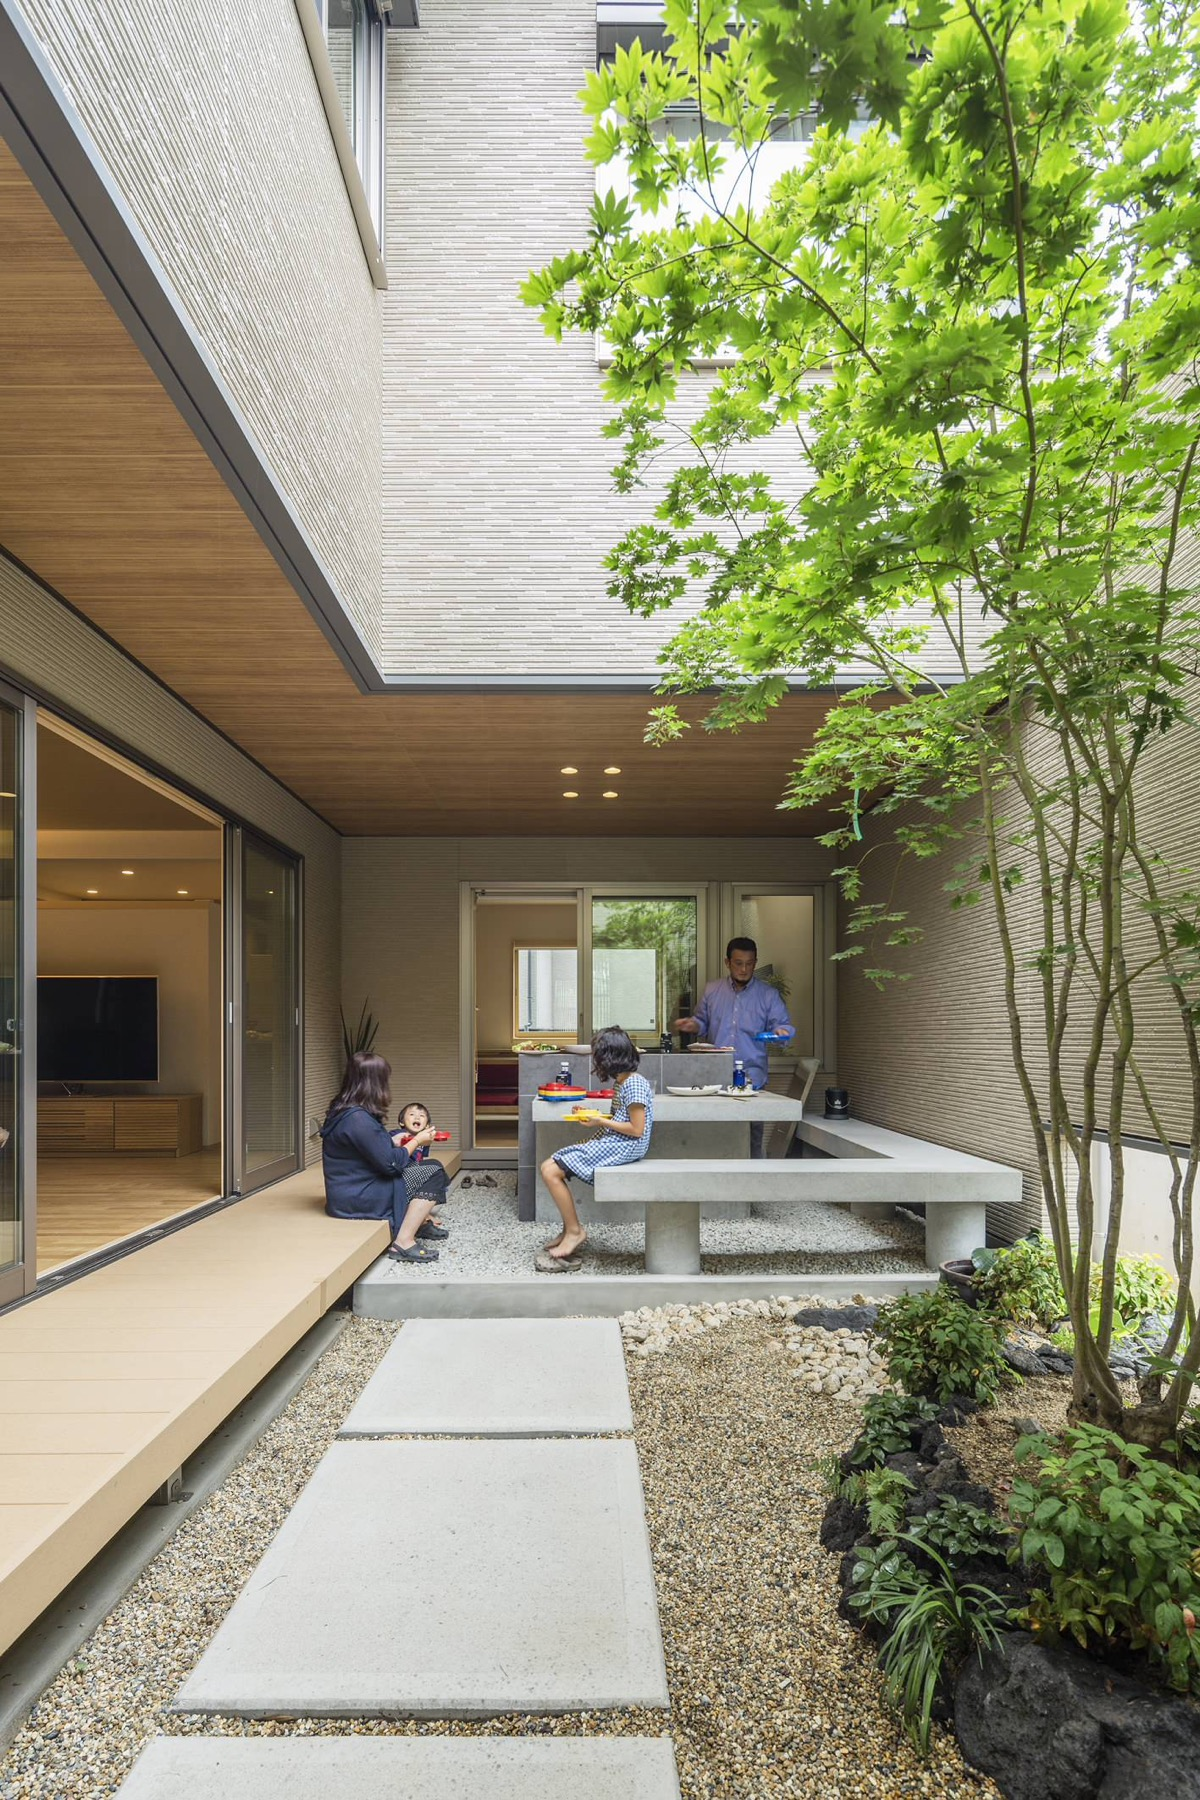 51 Captivating Courtyard Designs That Make Us Go Wow on Courtyard Patio Ideas id=38941